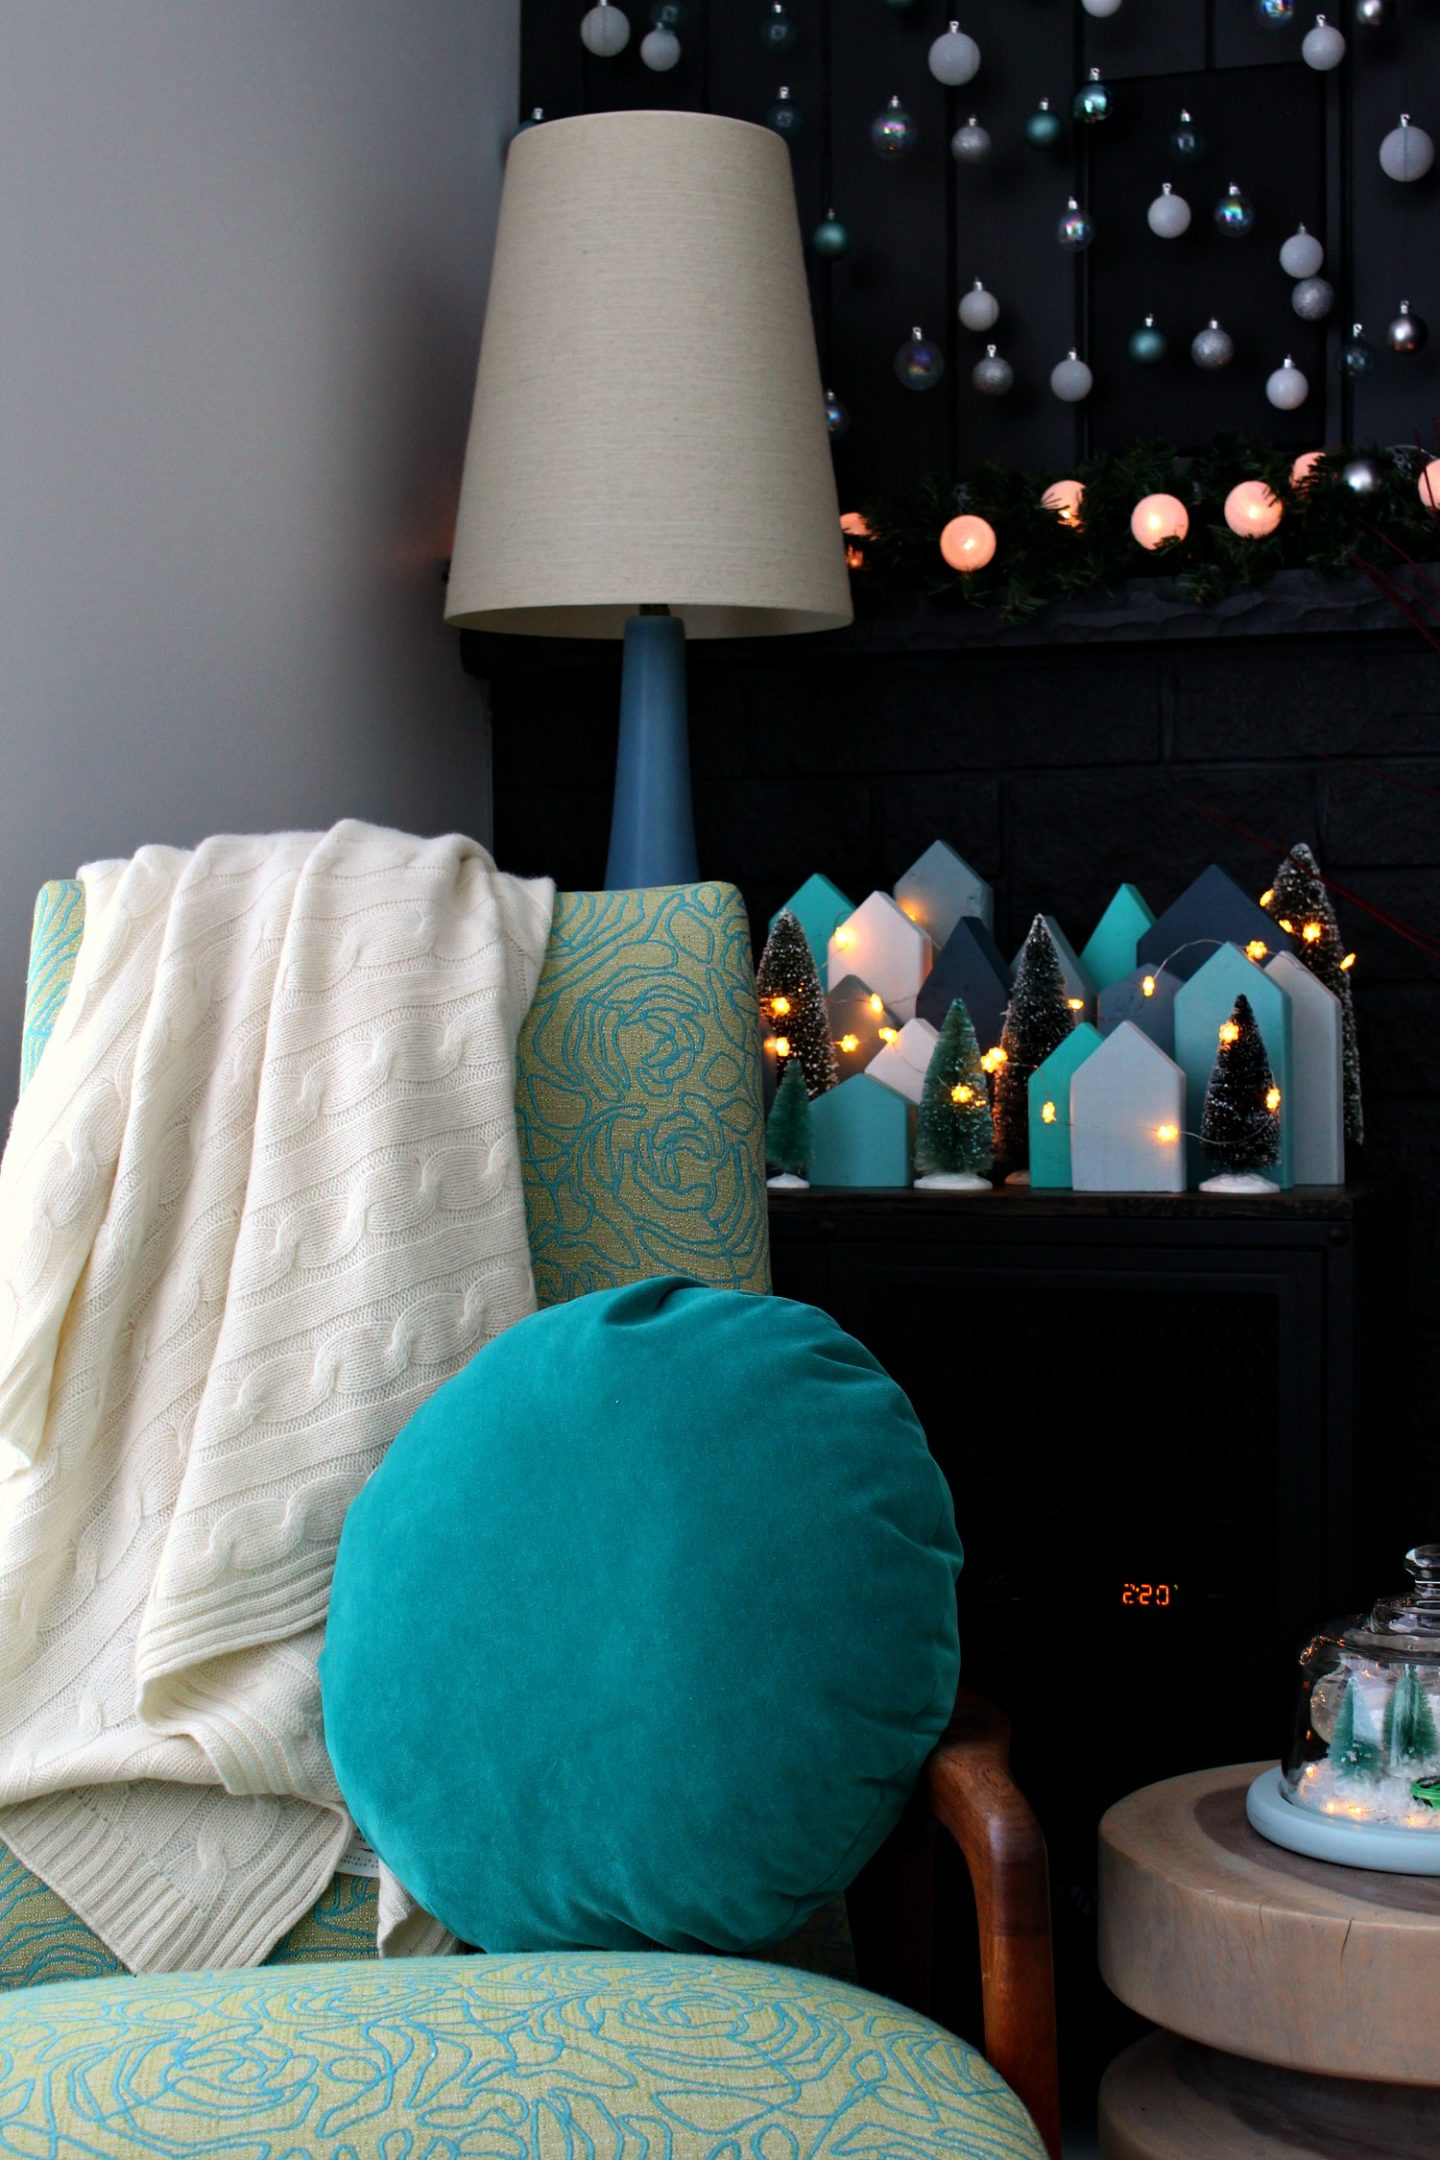 FREE DIY Holiday Village | Scrap Wood DIY Christmas Village